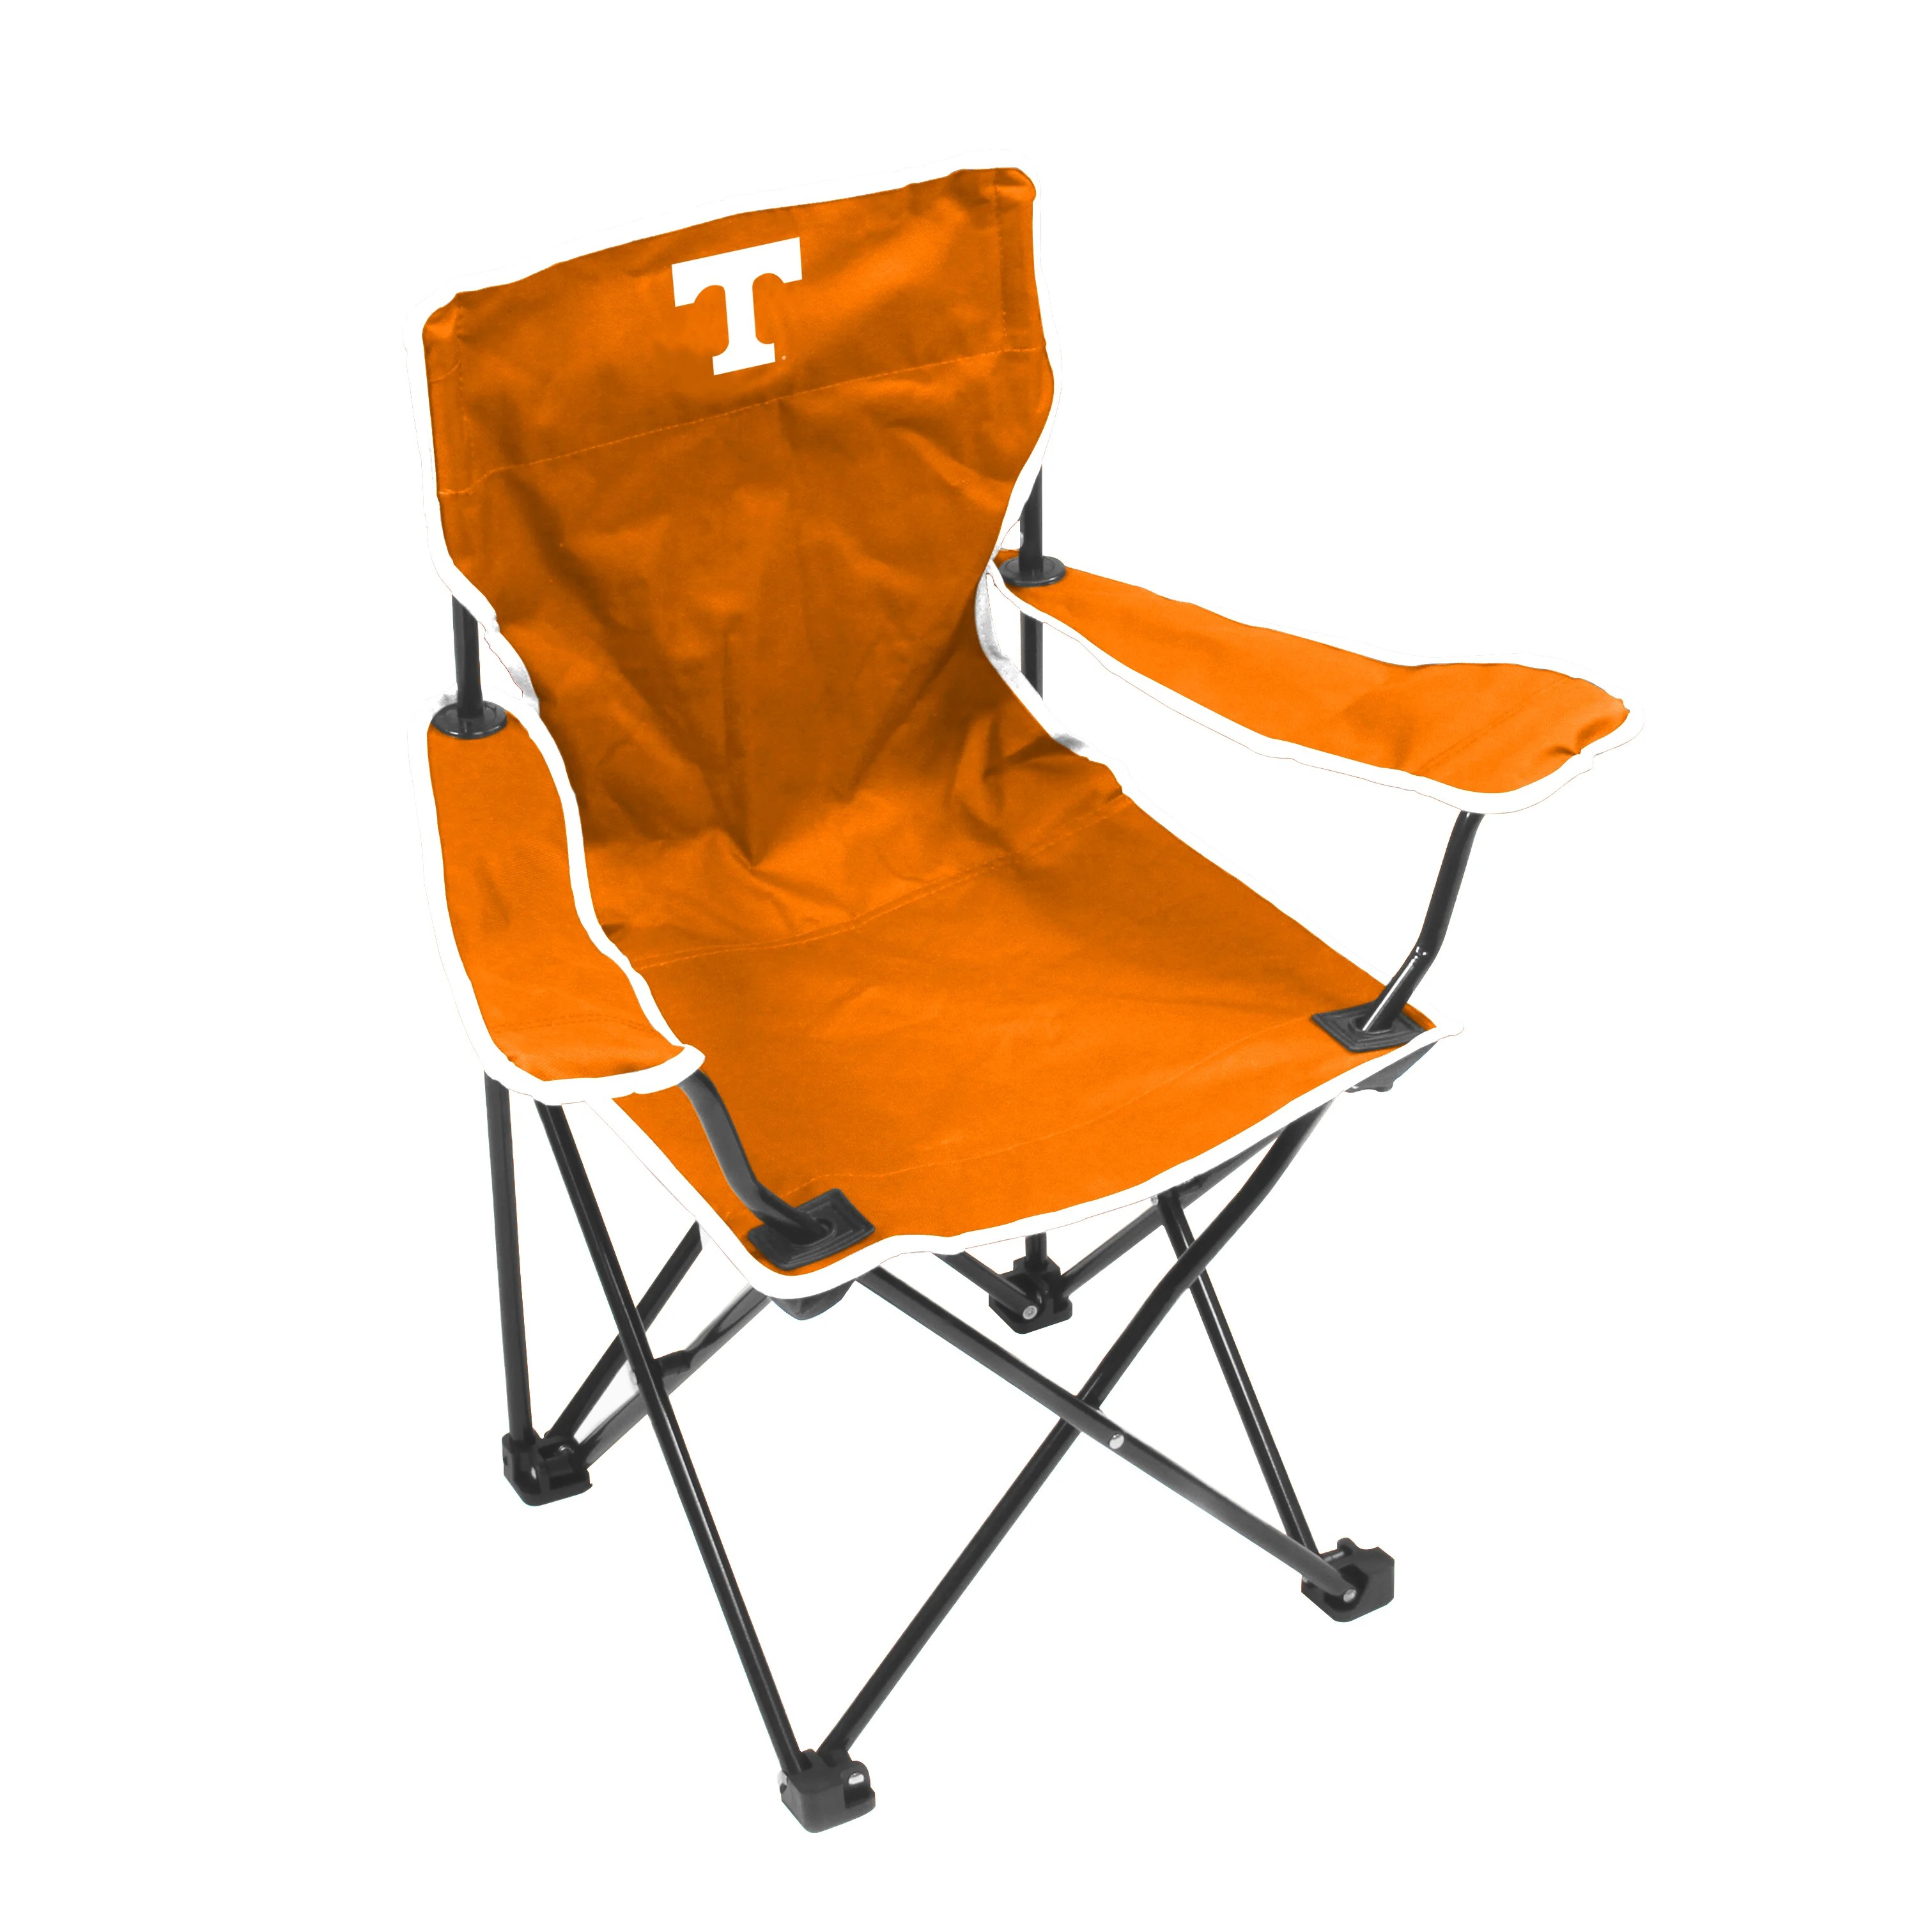 lsu folding chairs rocking at tractor supply logo ncaa youth beach chair and reviews